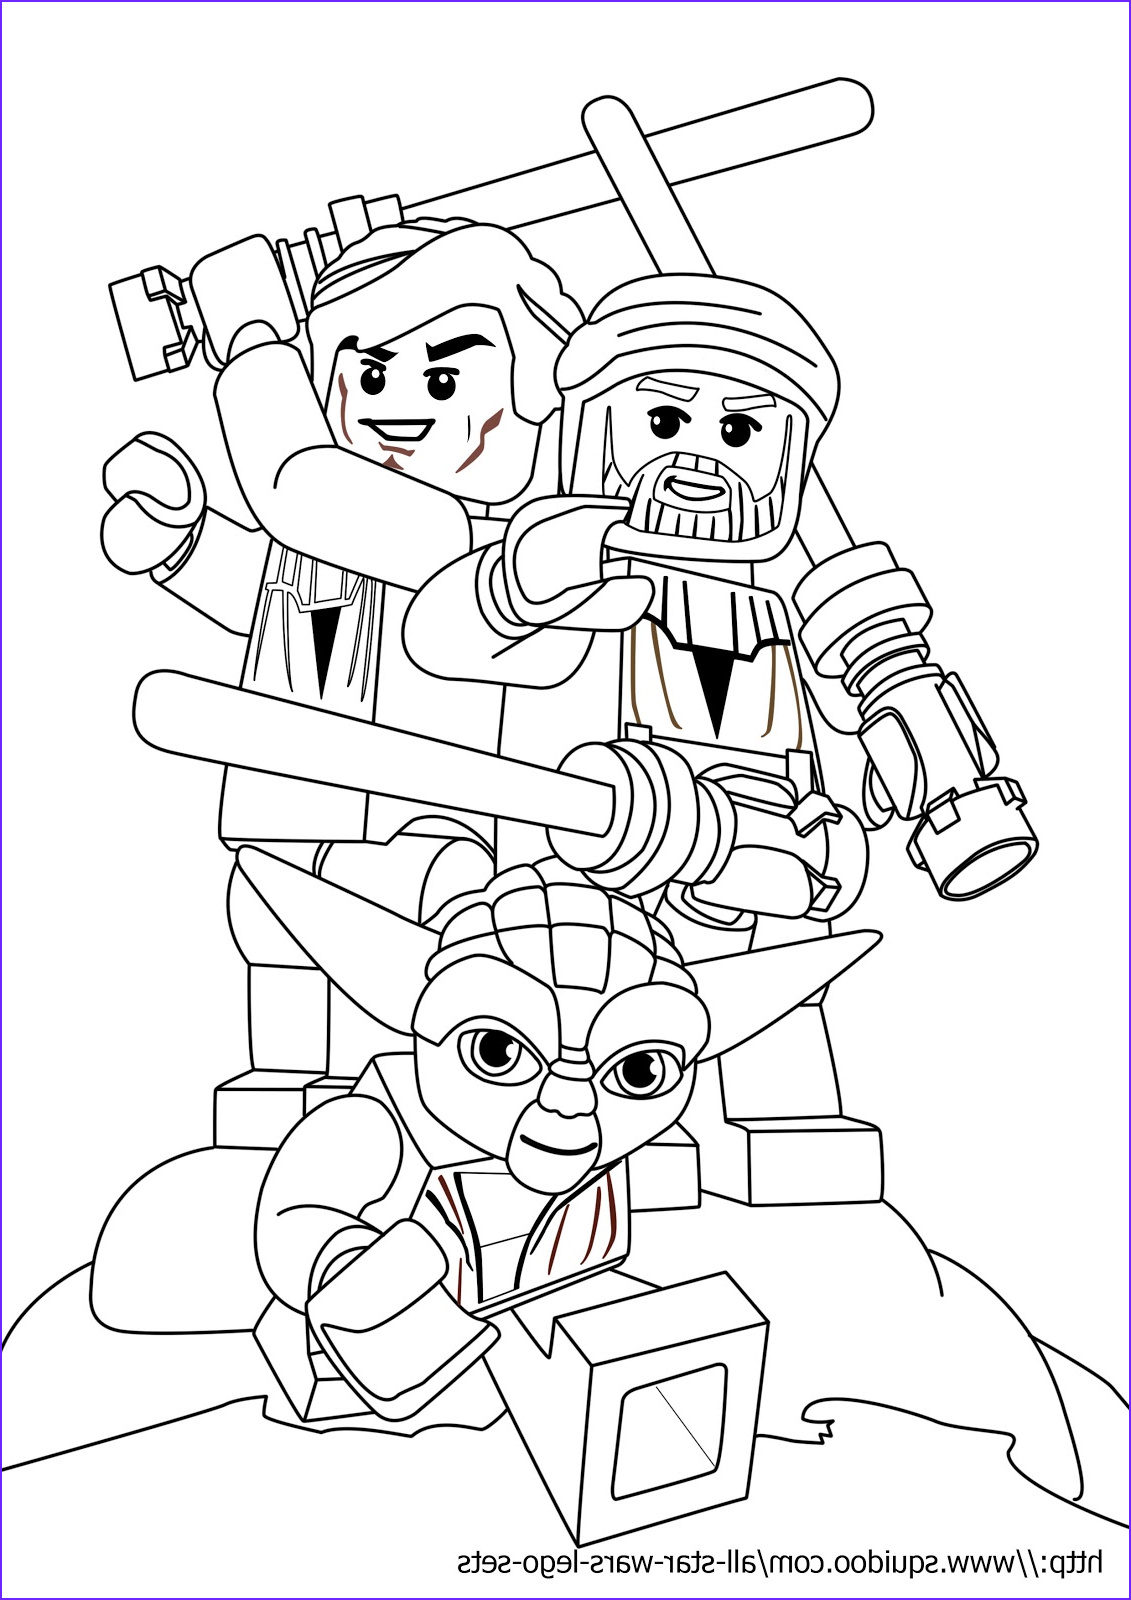 Star Wars Characters Coloring Pages Best Of Photos Lego Star Wars Luke Skywalker Coloring Page Free Printable